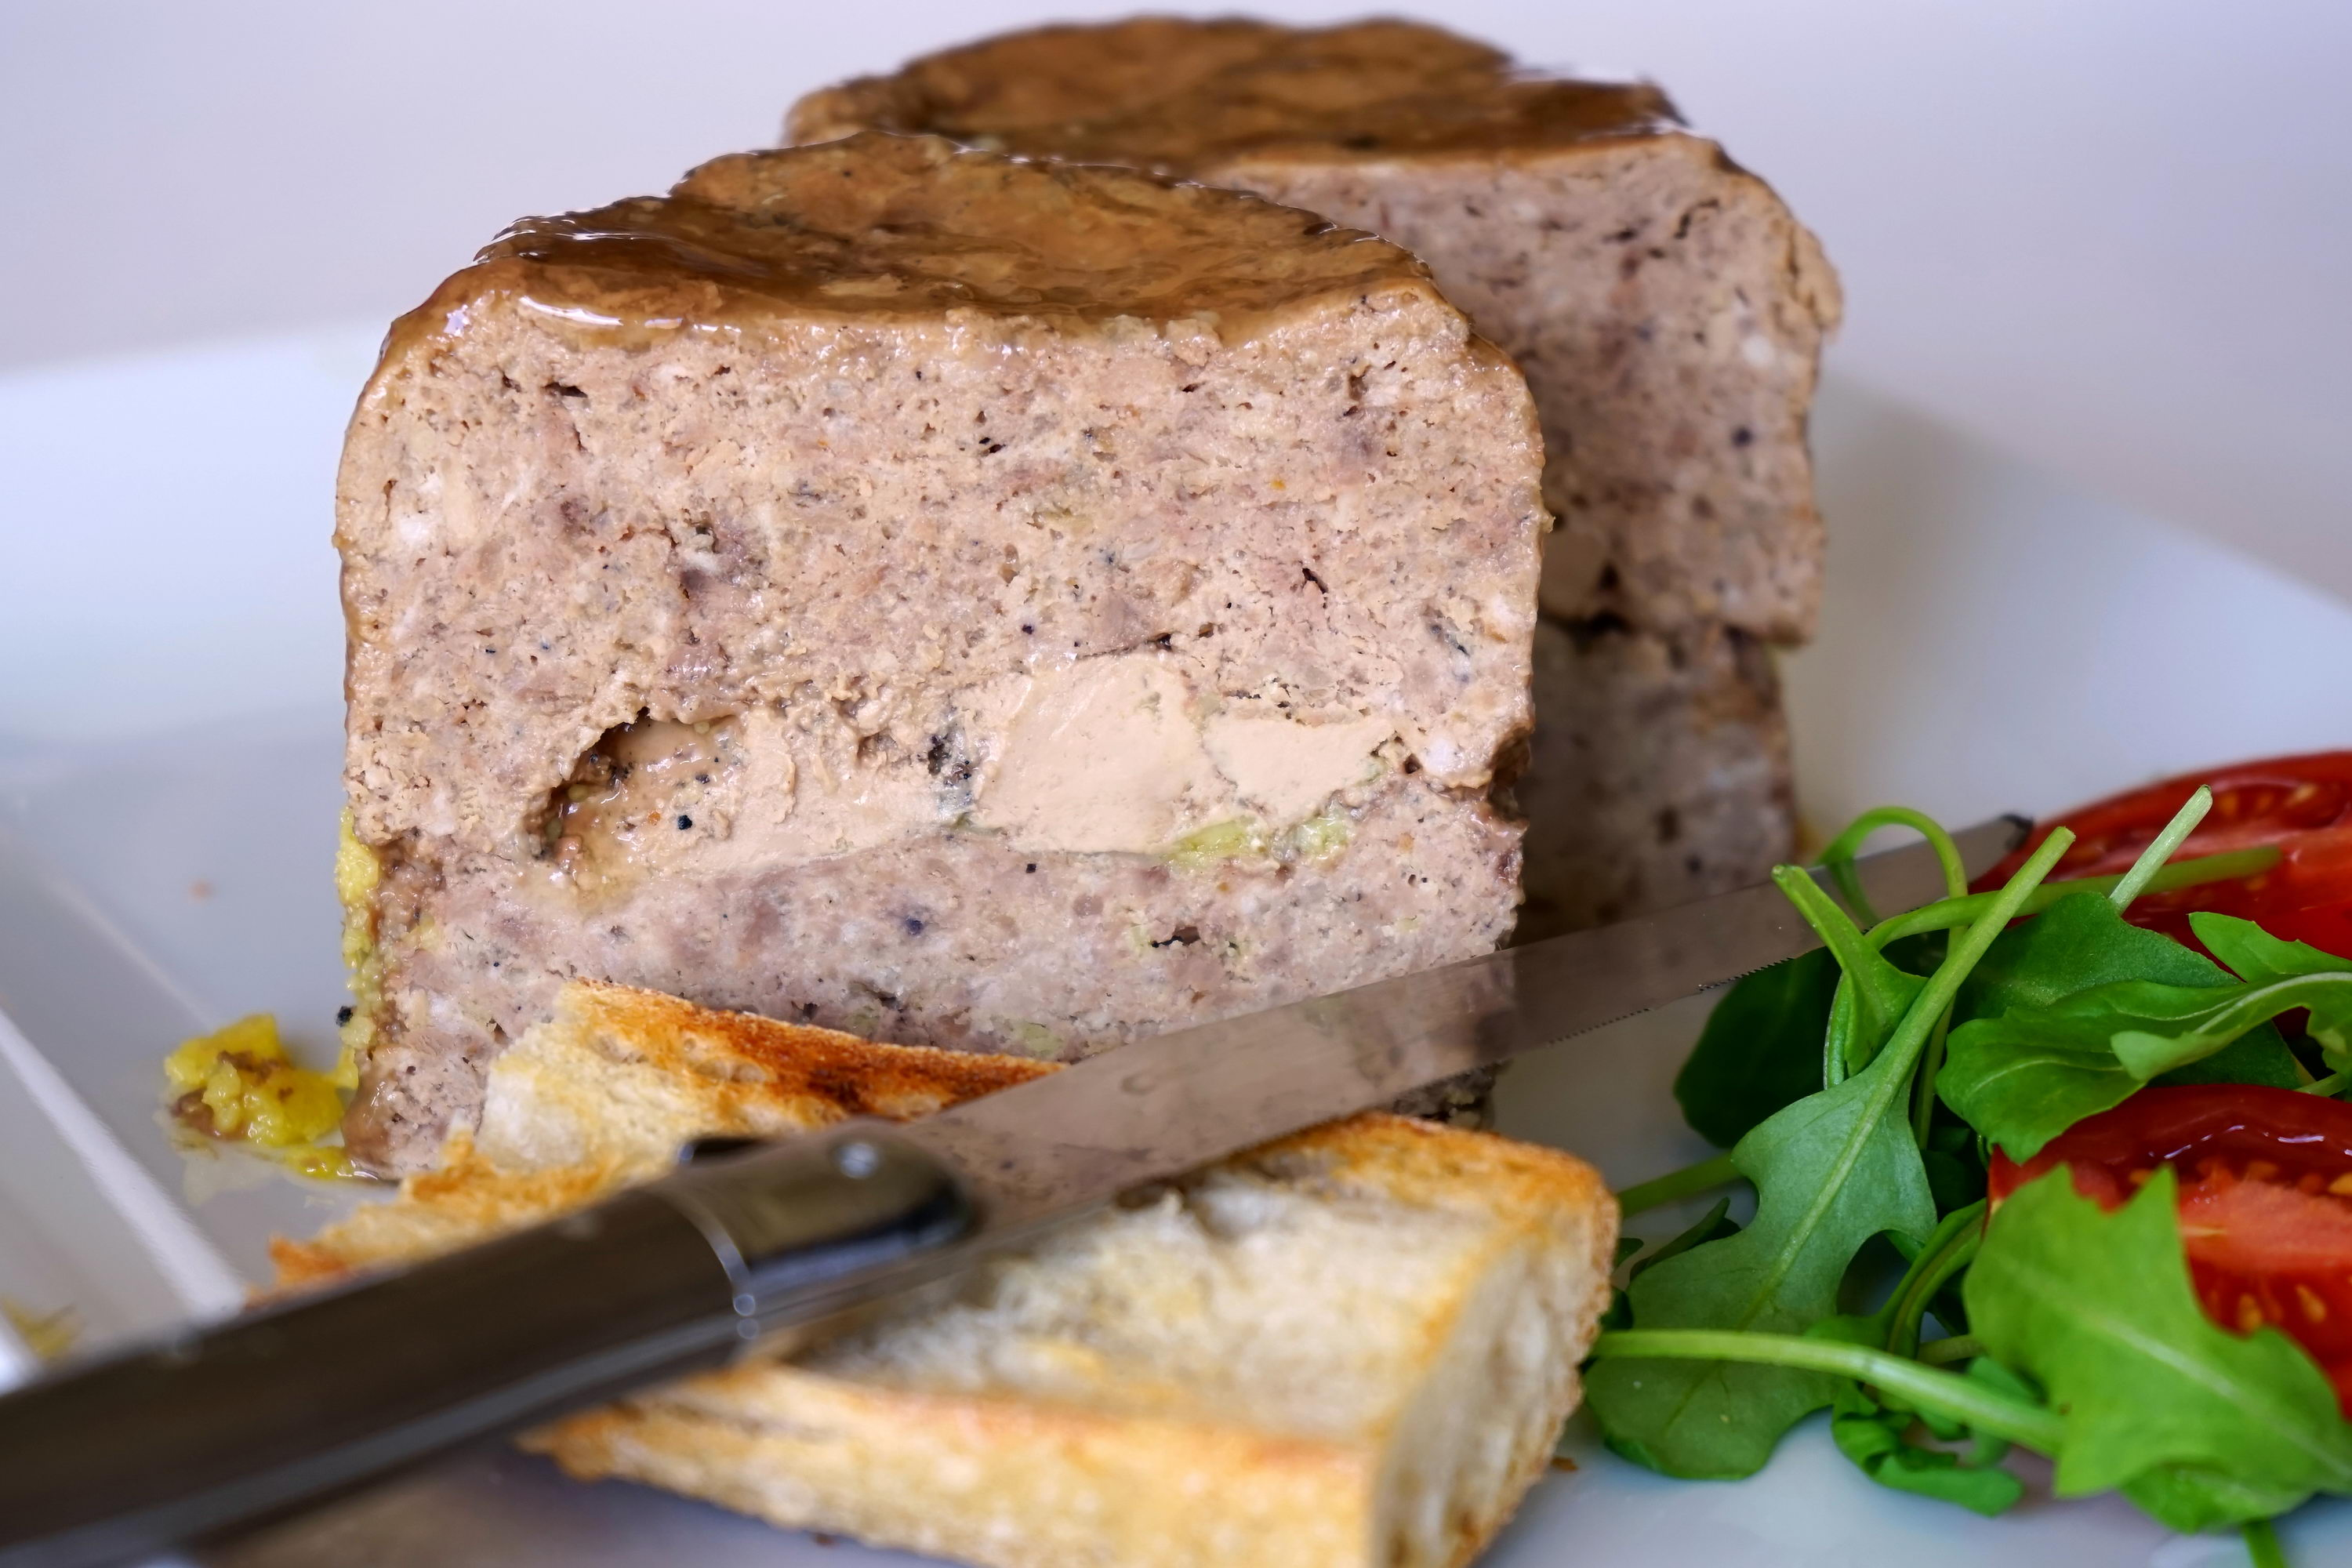 terrine de volaille au foie gras recette terrine de volaille au foie gras par chef simon. Black Bedroom Furniture Sets. Home Design Ideas